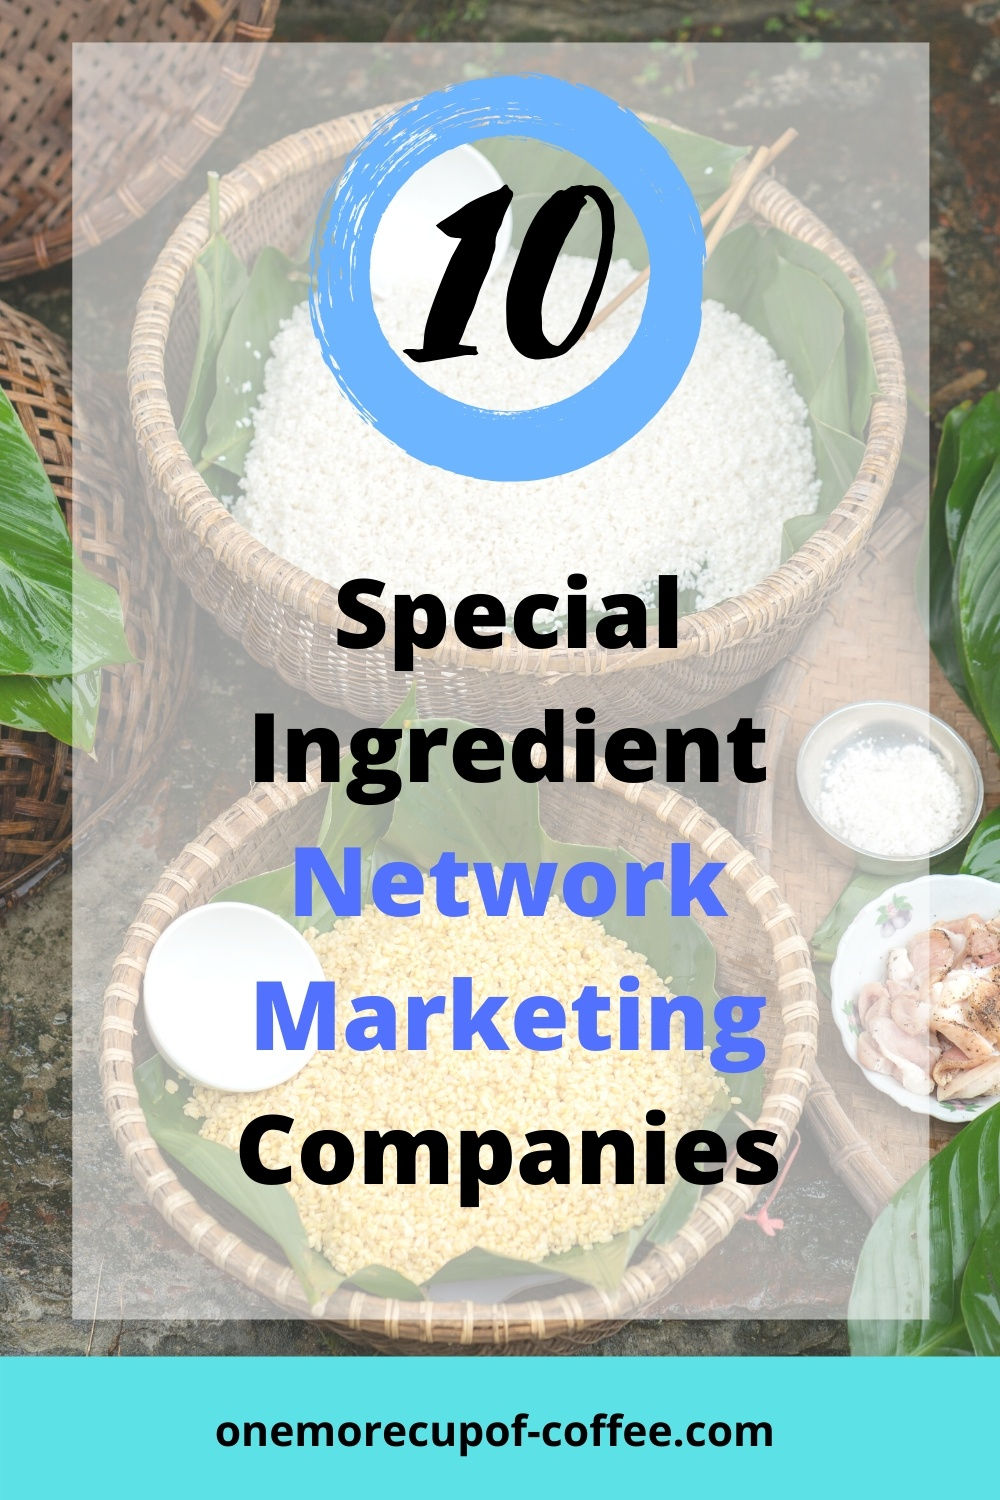 Baskets filled with ingredients to represent special ingredient network marketing companies